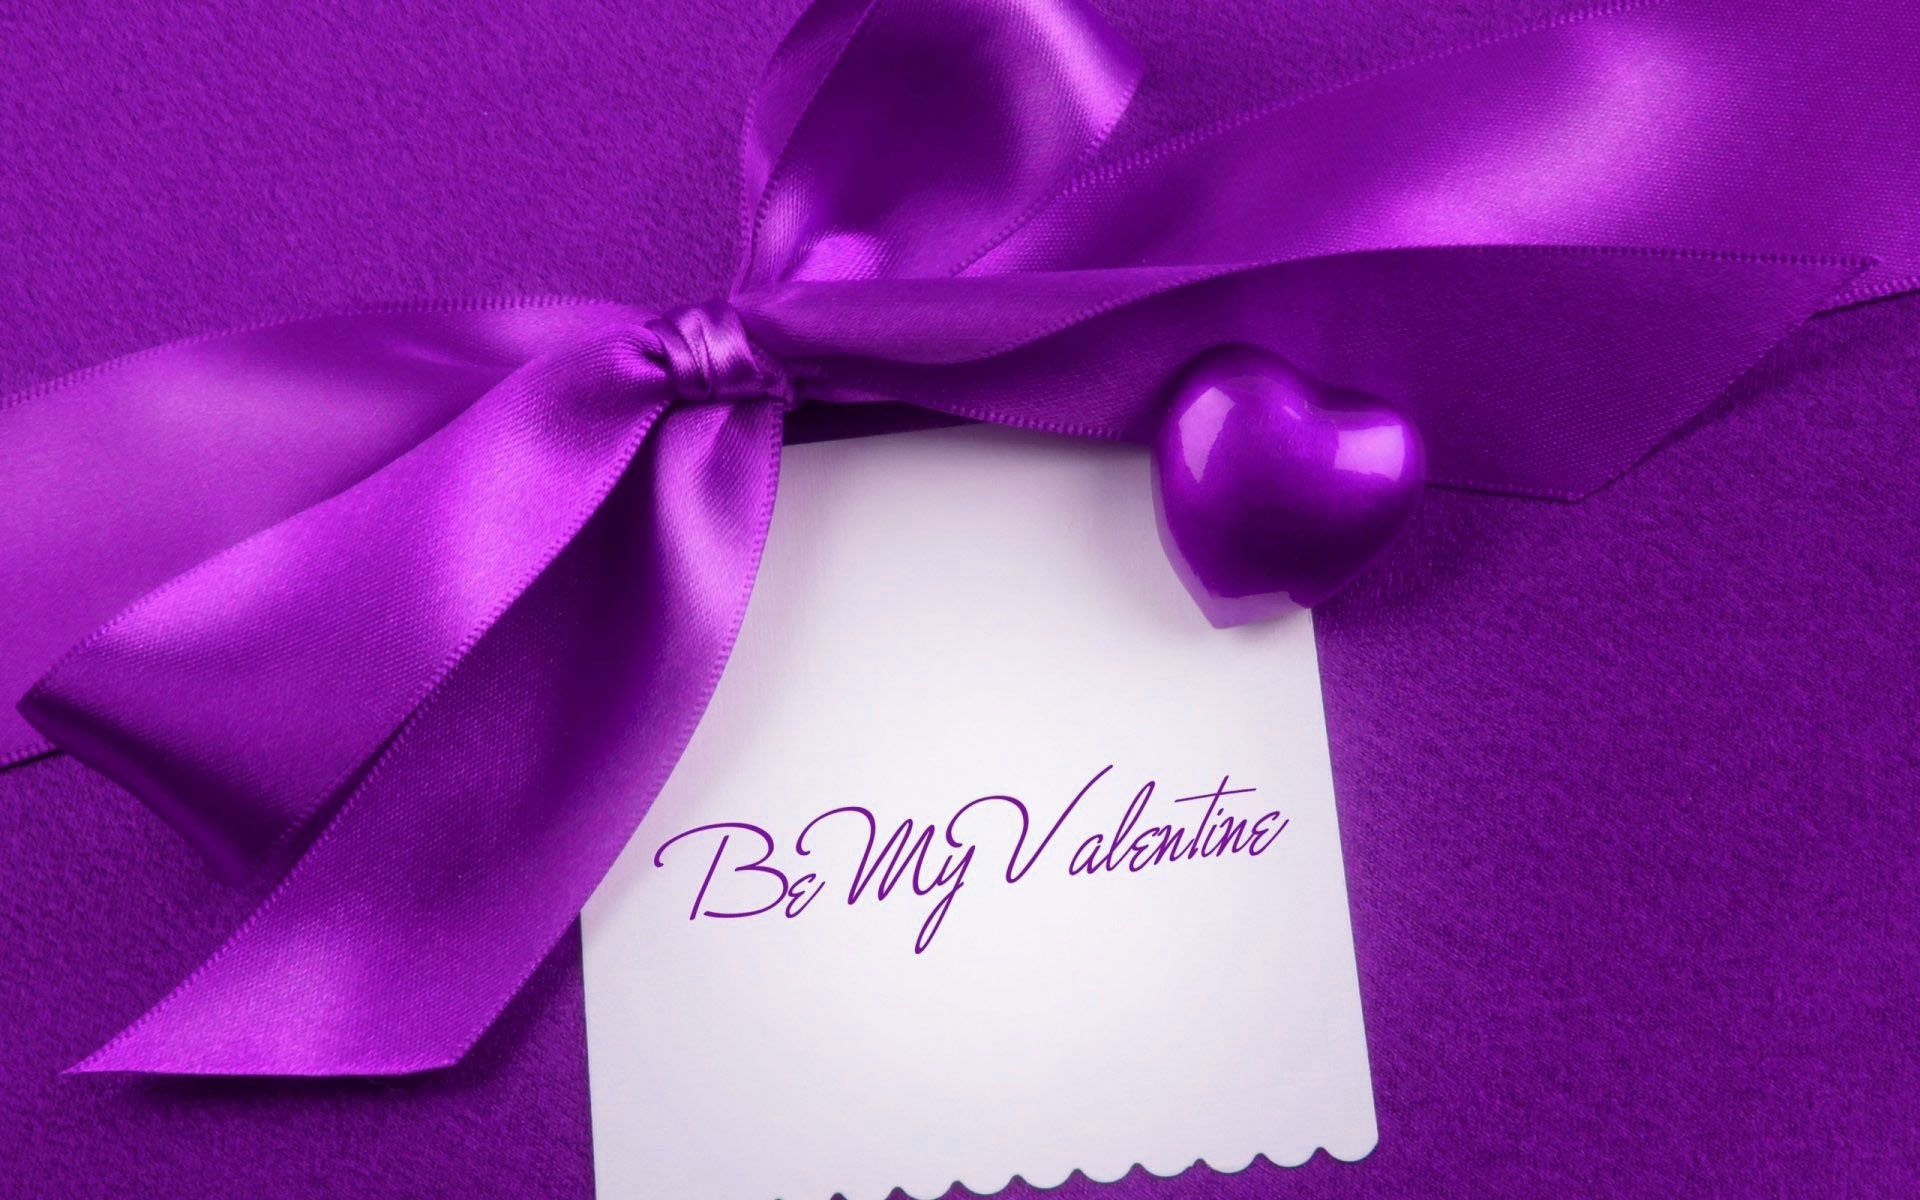 Be My Valentine HD Wallpapers in HD Be my valentine